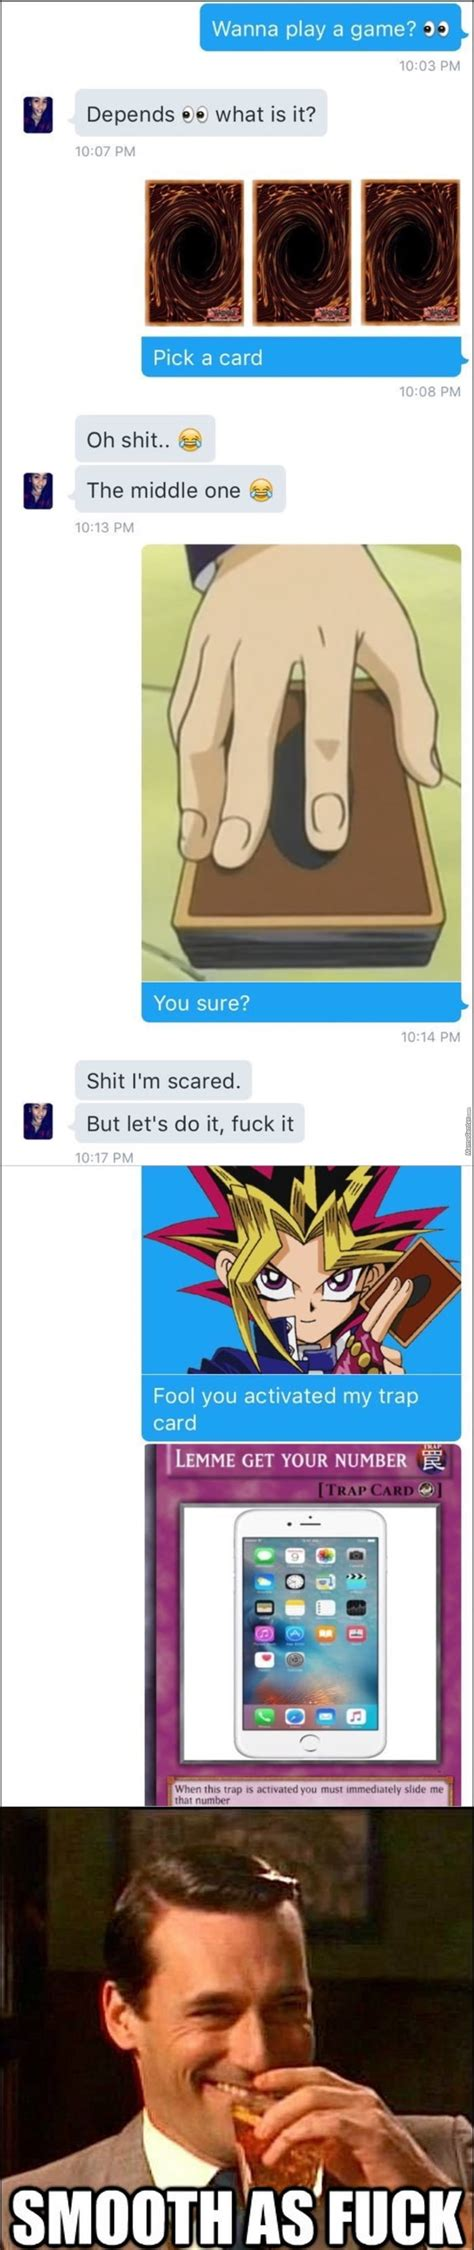 """Последние твиты от you activated my trap card (@traparound). """"fool you just activated my trap card"""" DAMN that was a fast one! - 9GAG"""